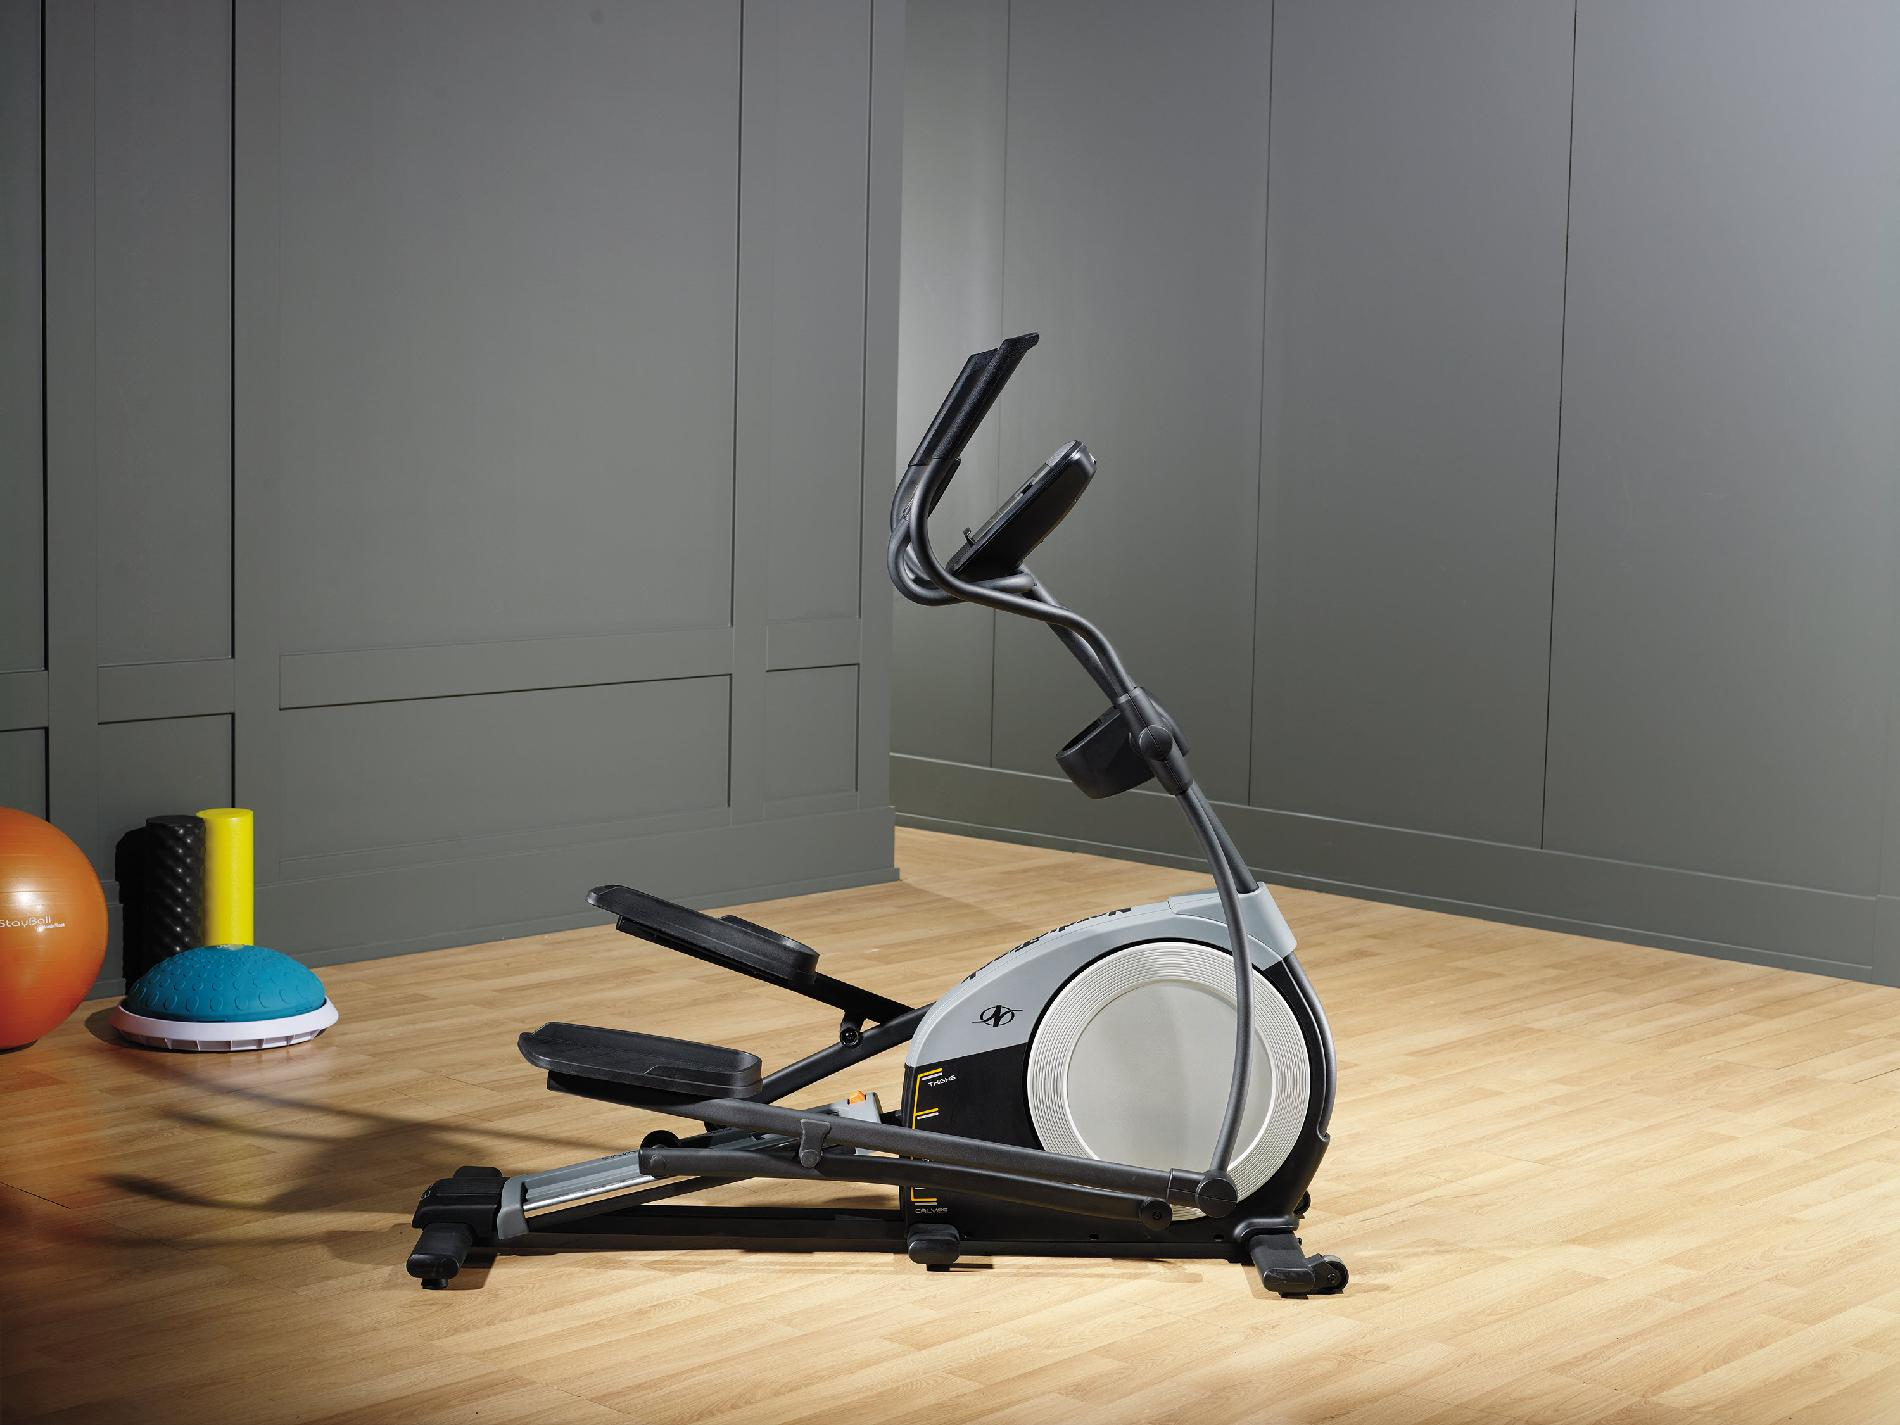 NordicTrack E 6.3 Elliptical